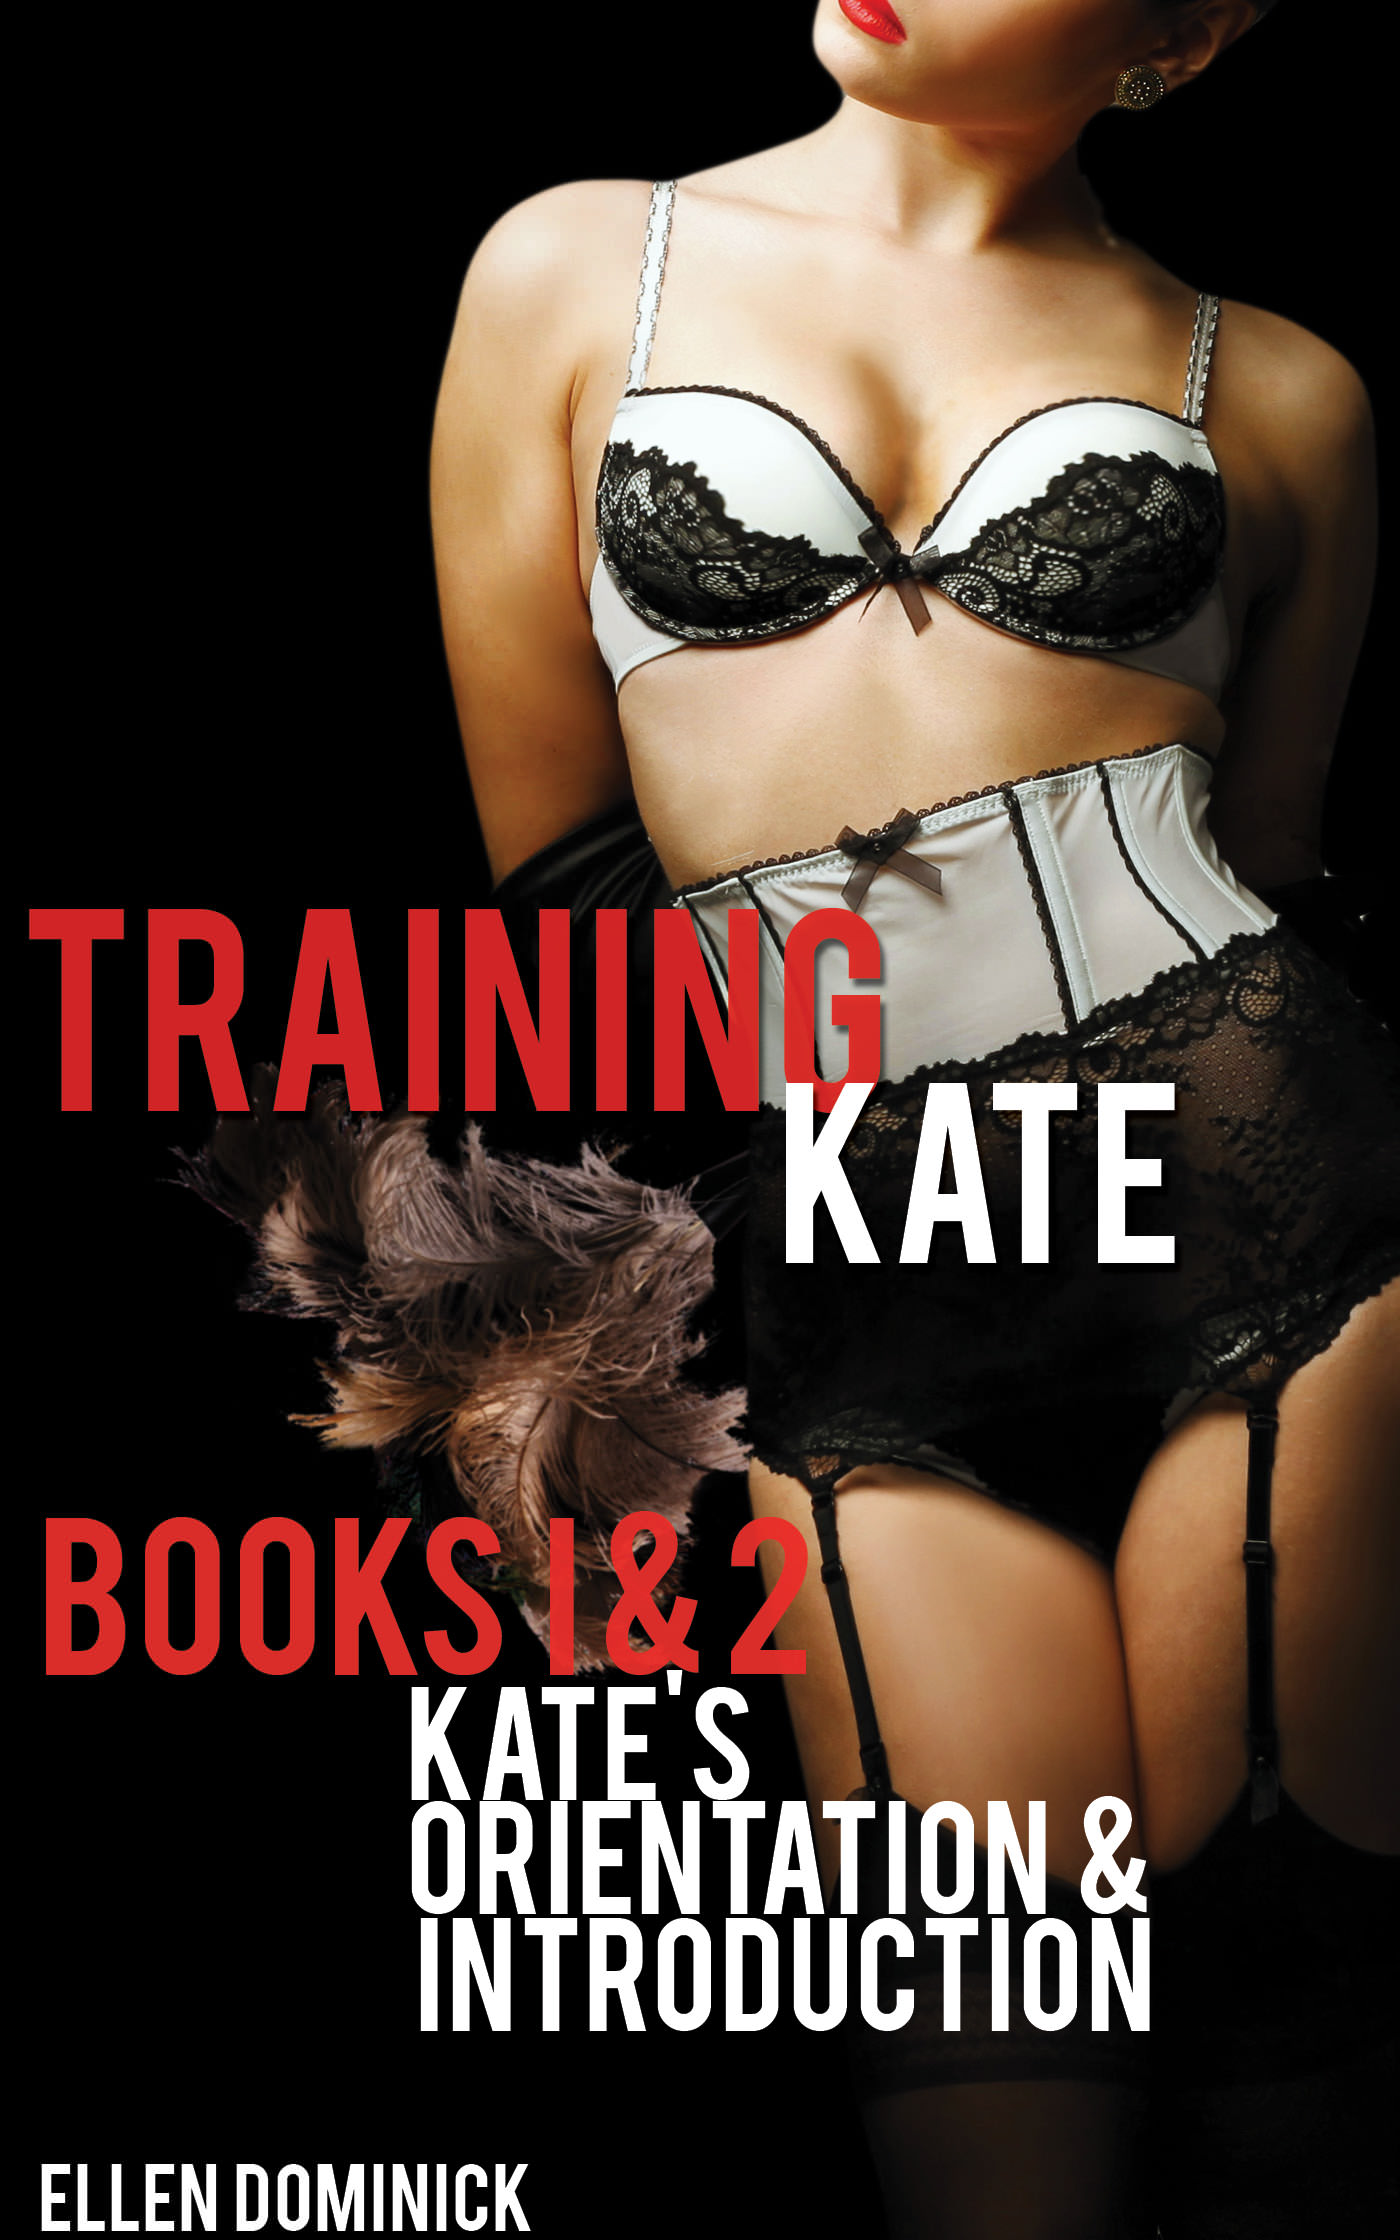 trainingkatebundle1-2.jpg